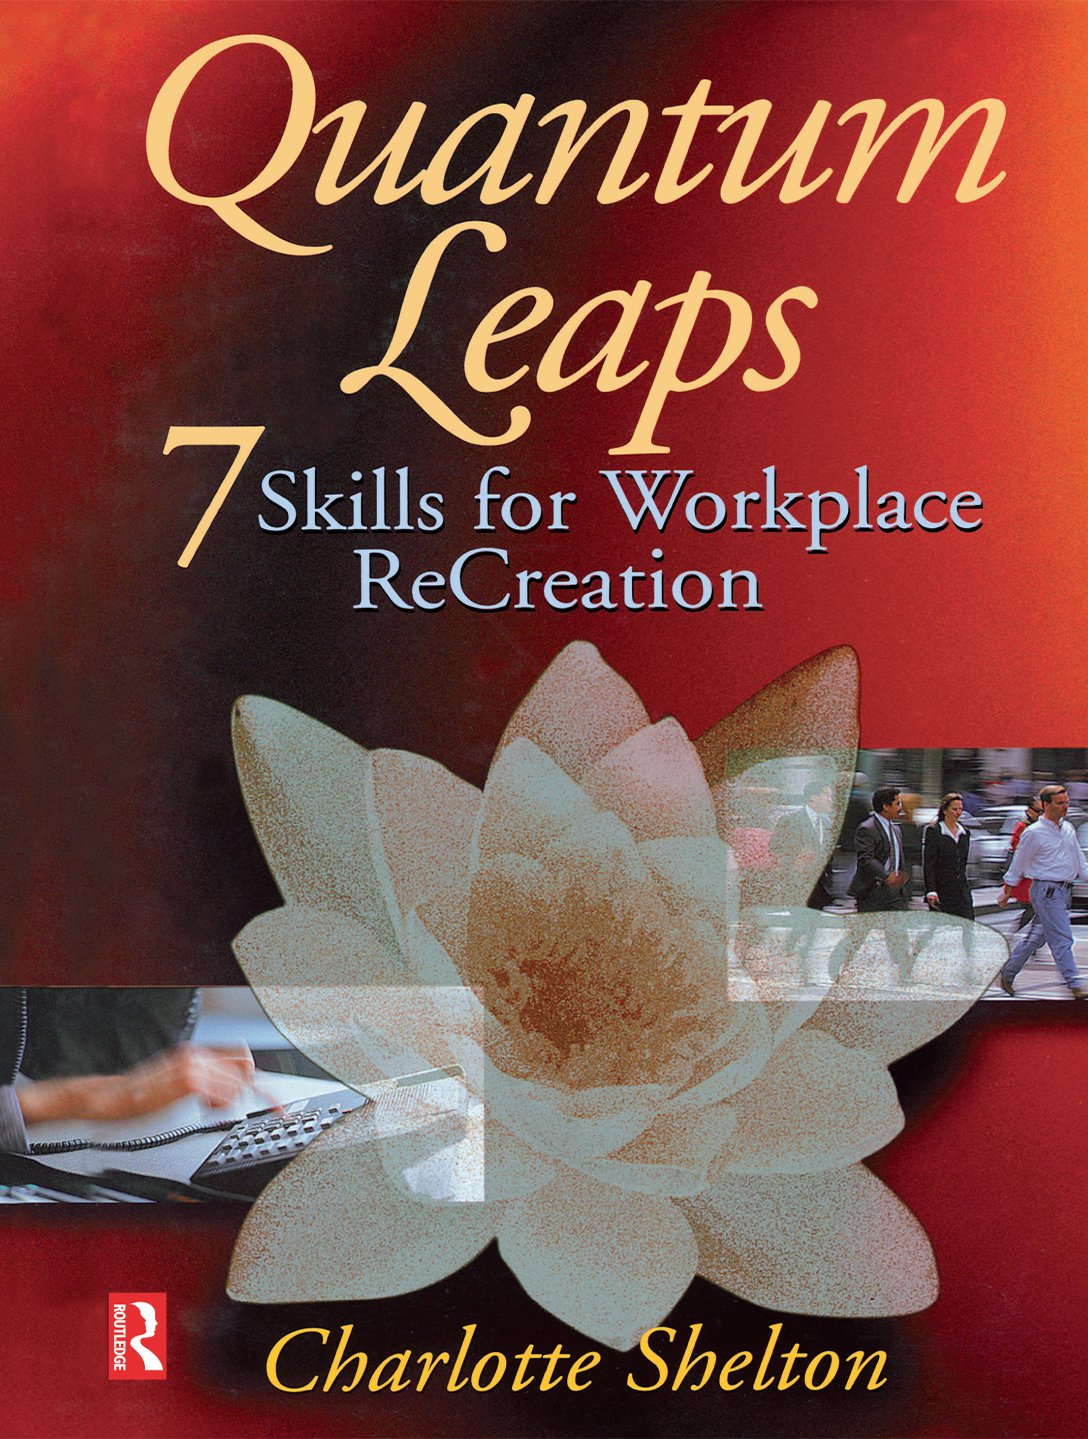 Quantum Leaps: Seven Skills for Workplace Re-creation